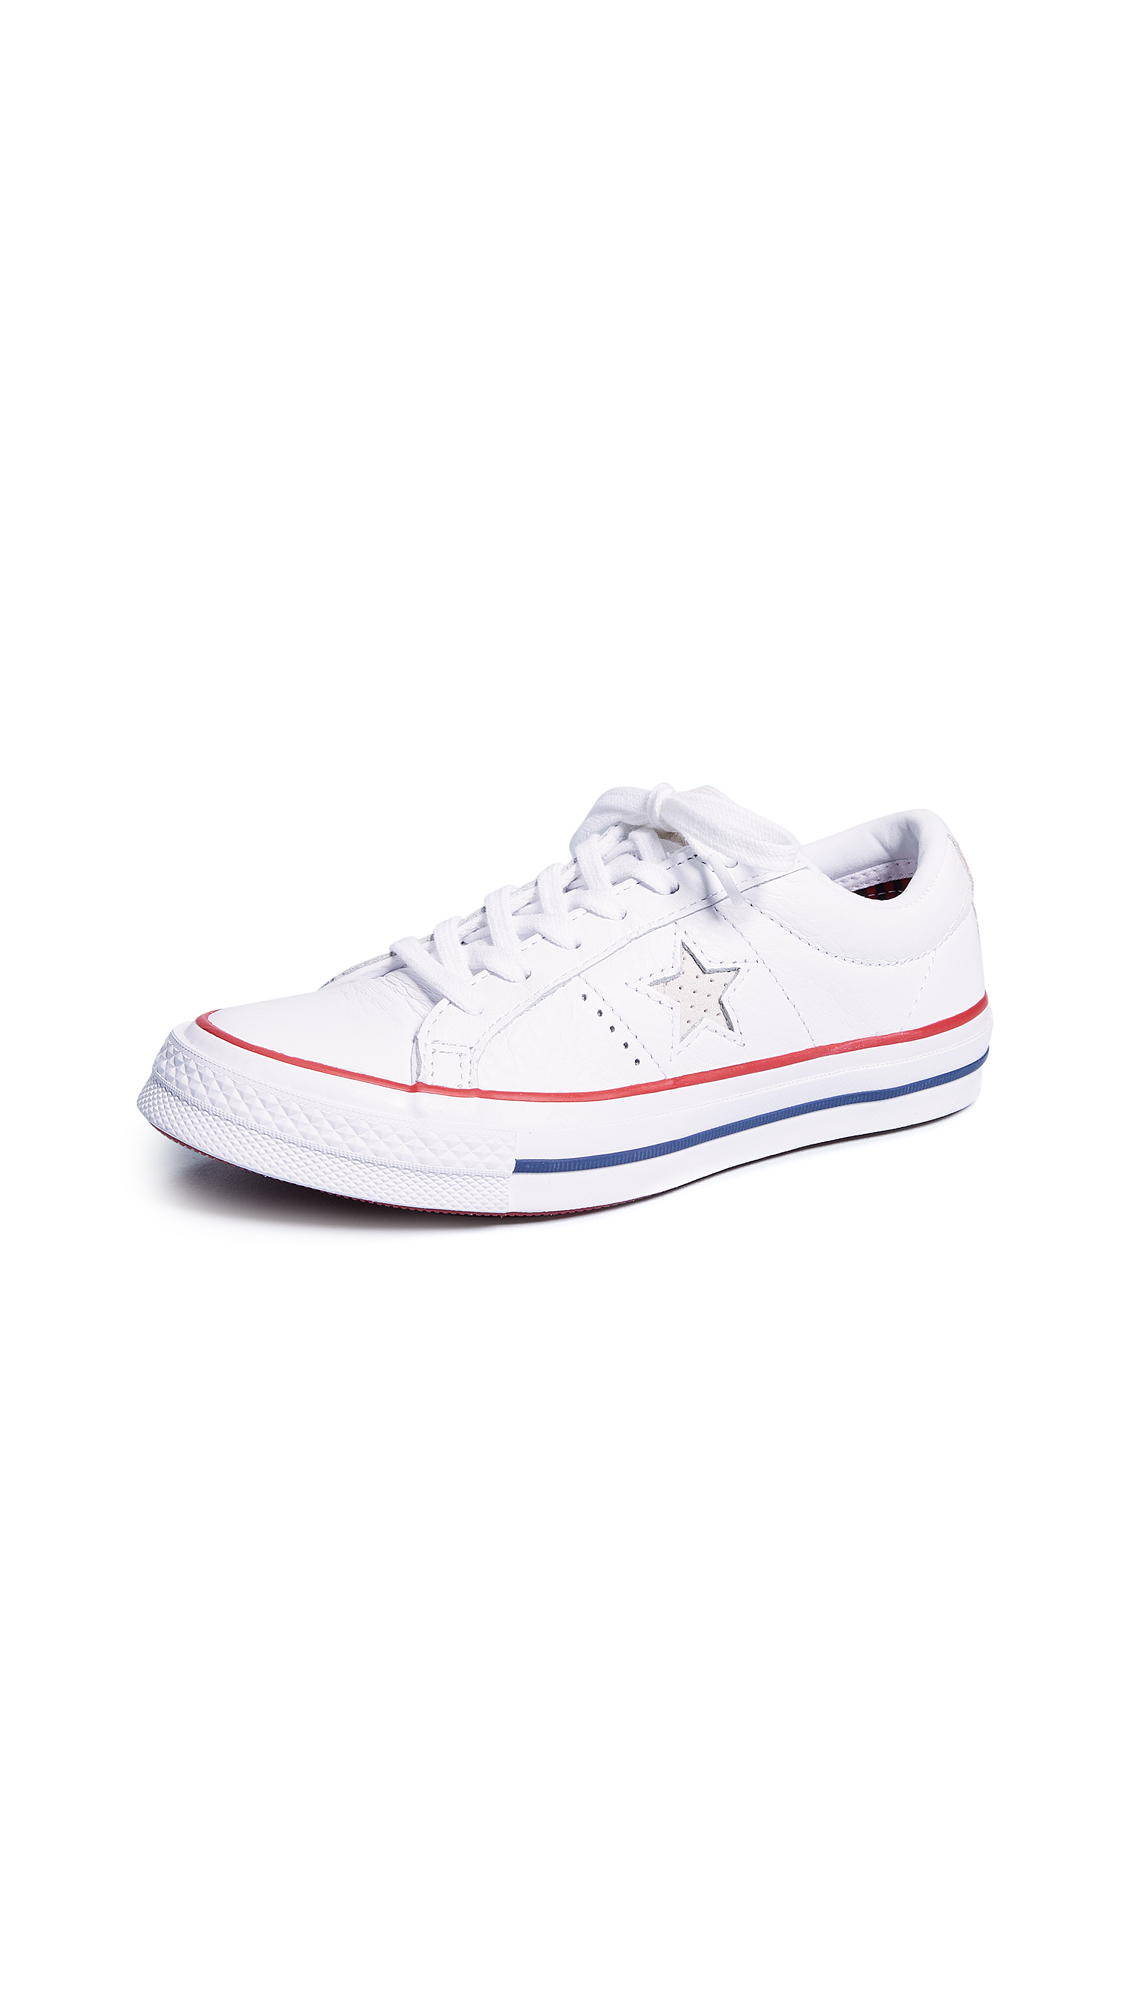 Converse One Star Ox Sneakers - White/Gym Red